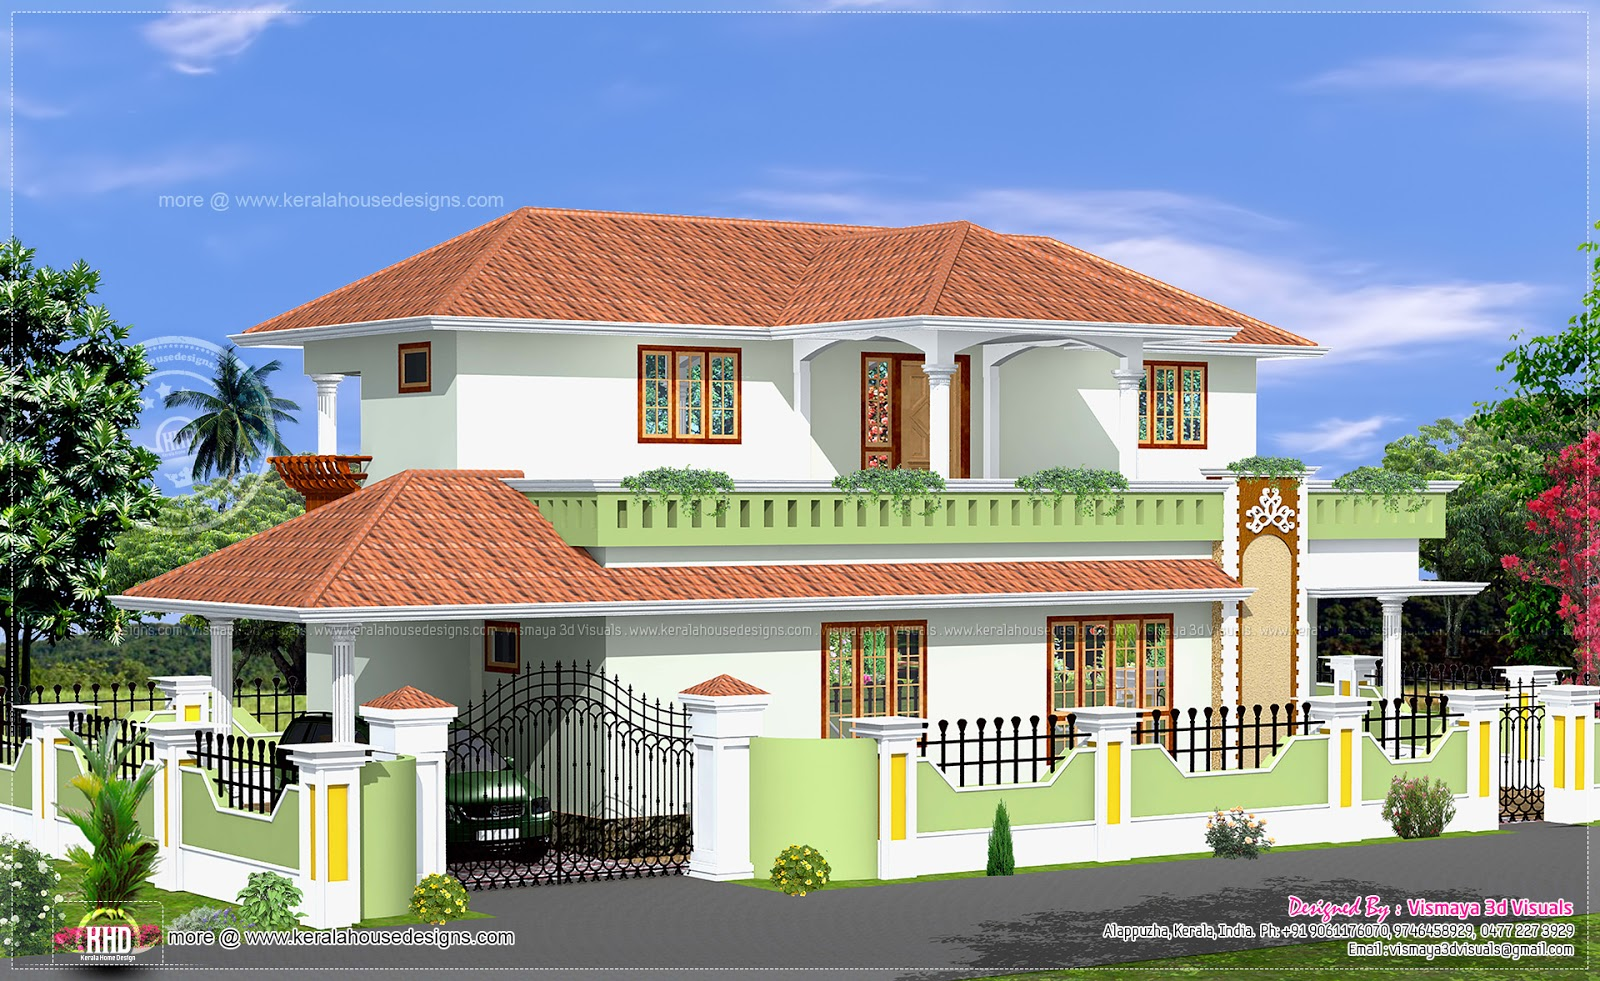 Simple house designs kerala style home design and style for Simple plan house design